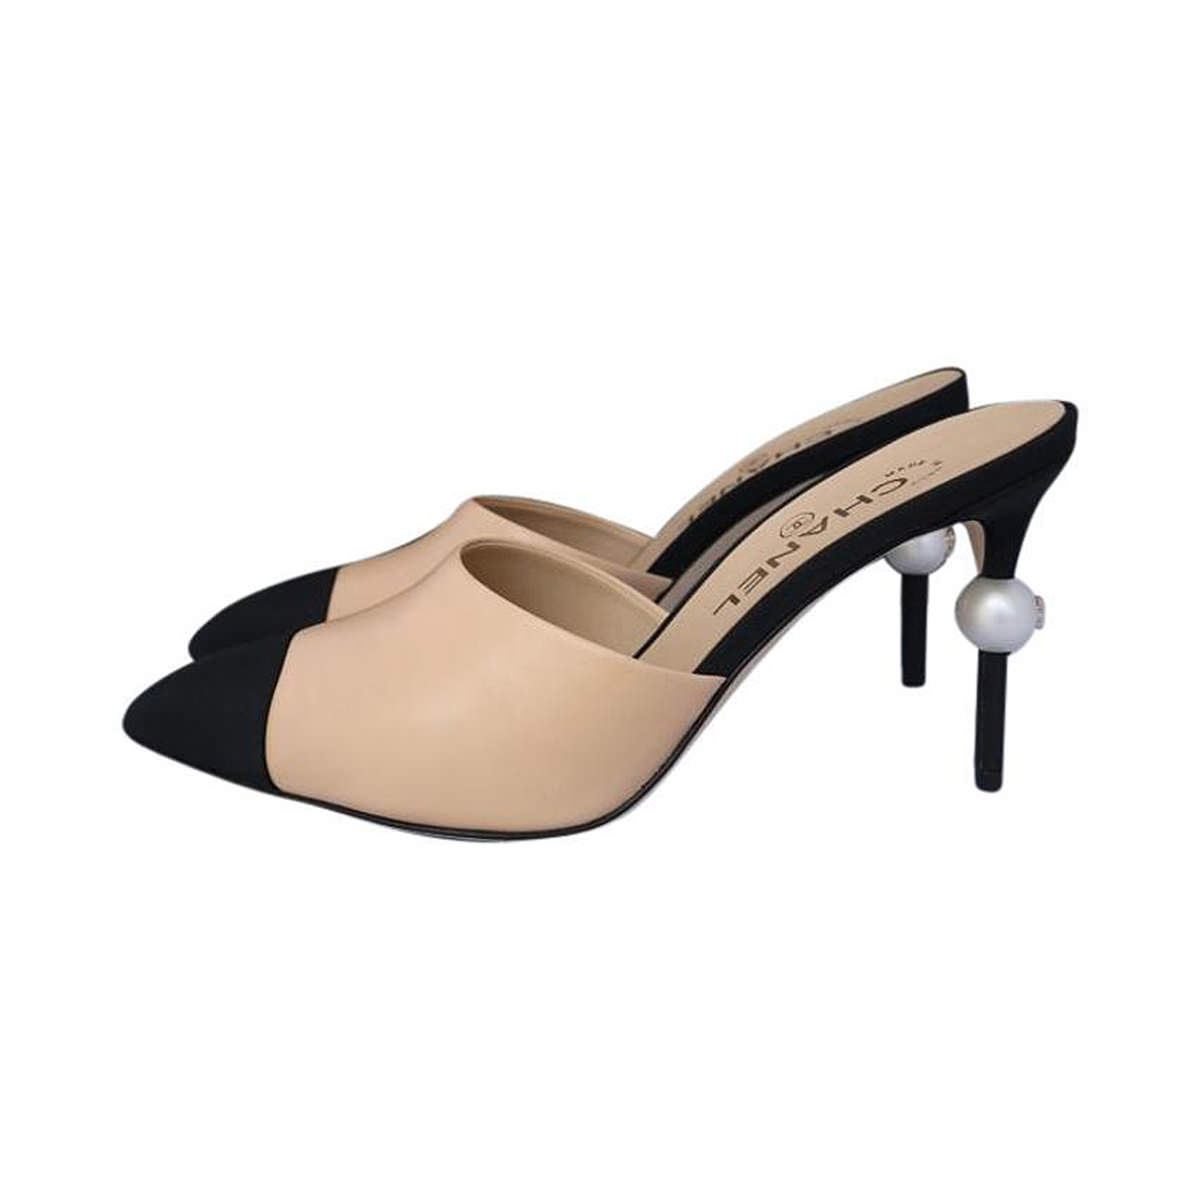 Chanel Mules - $995